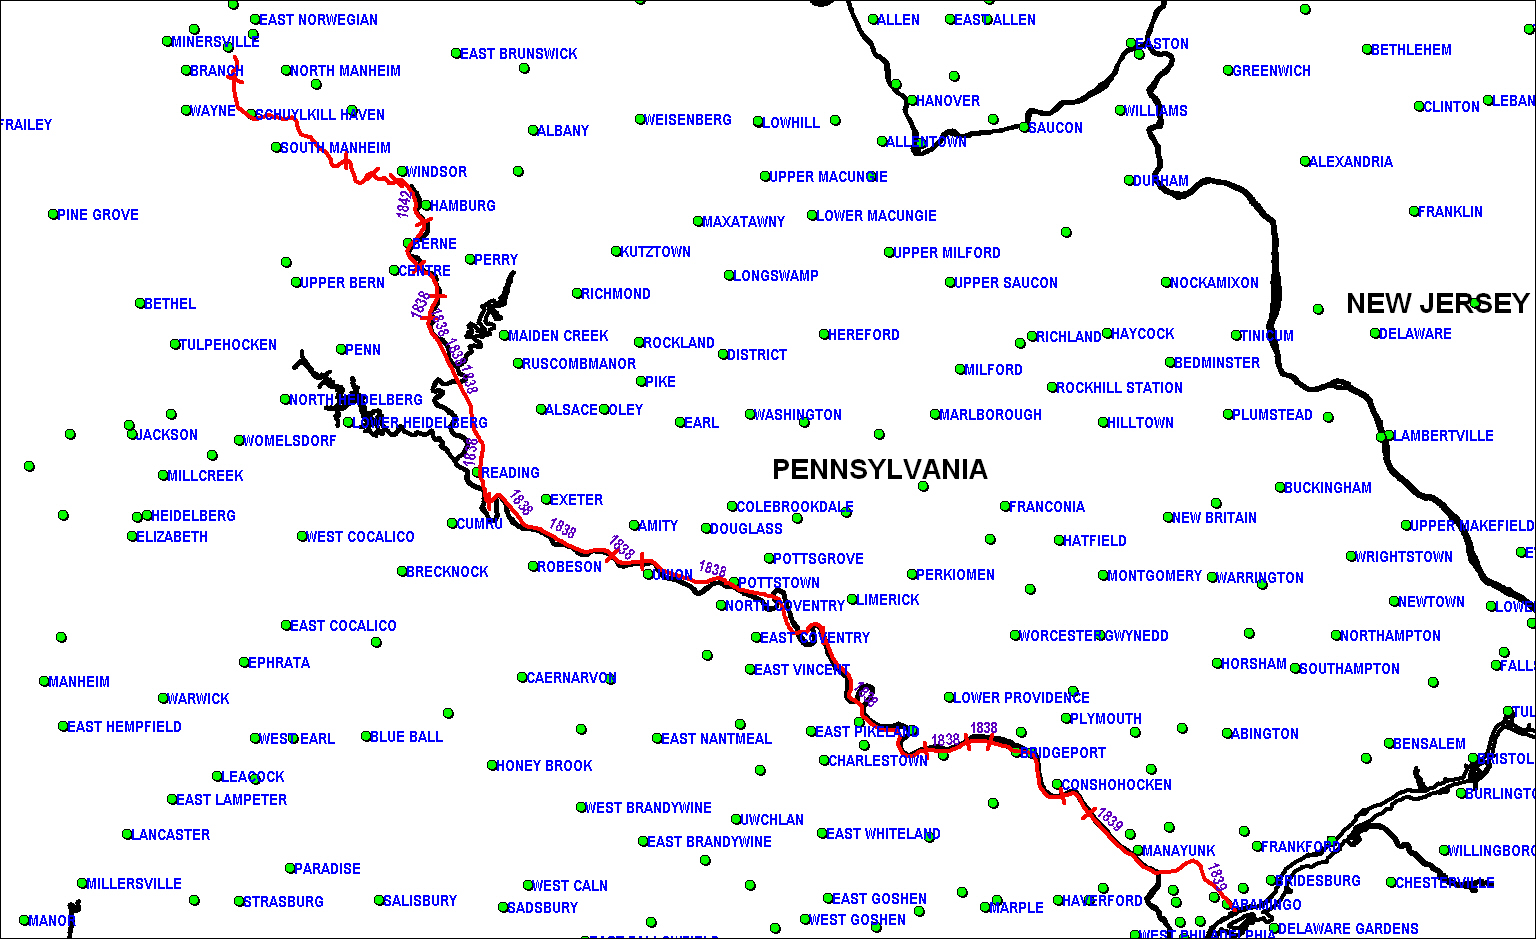 Philadelphia & Reading Railroad map as of 1850